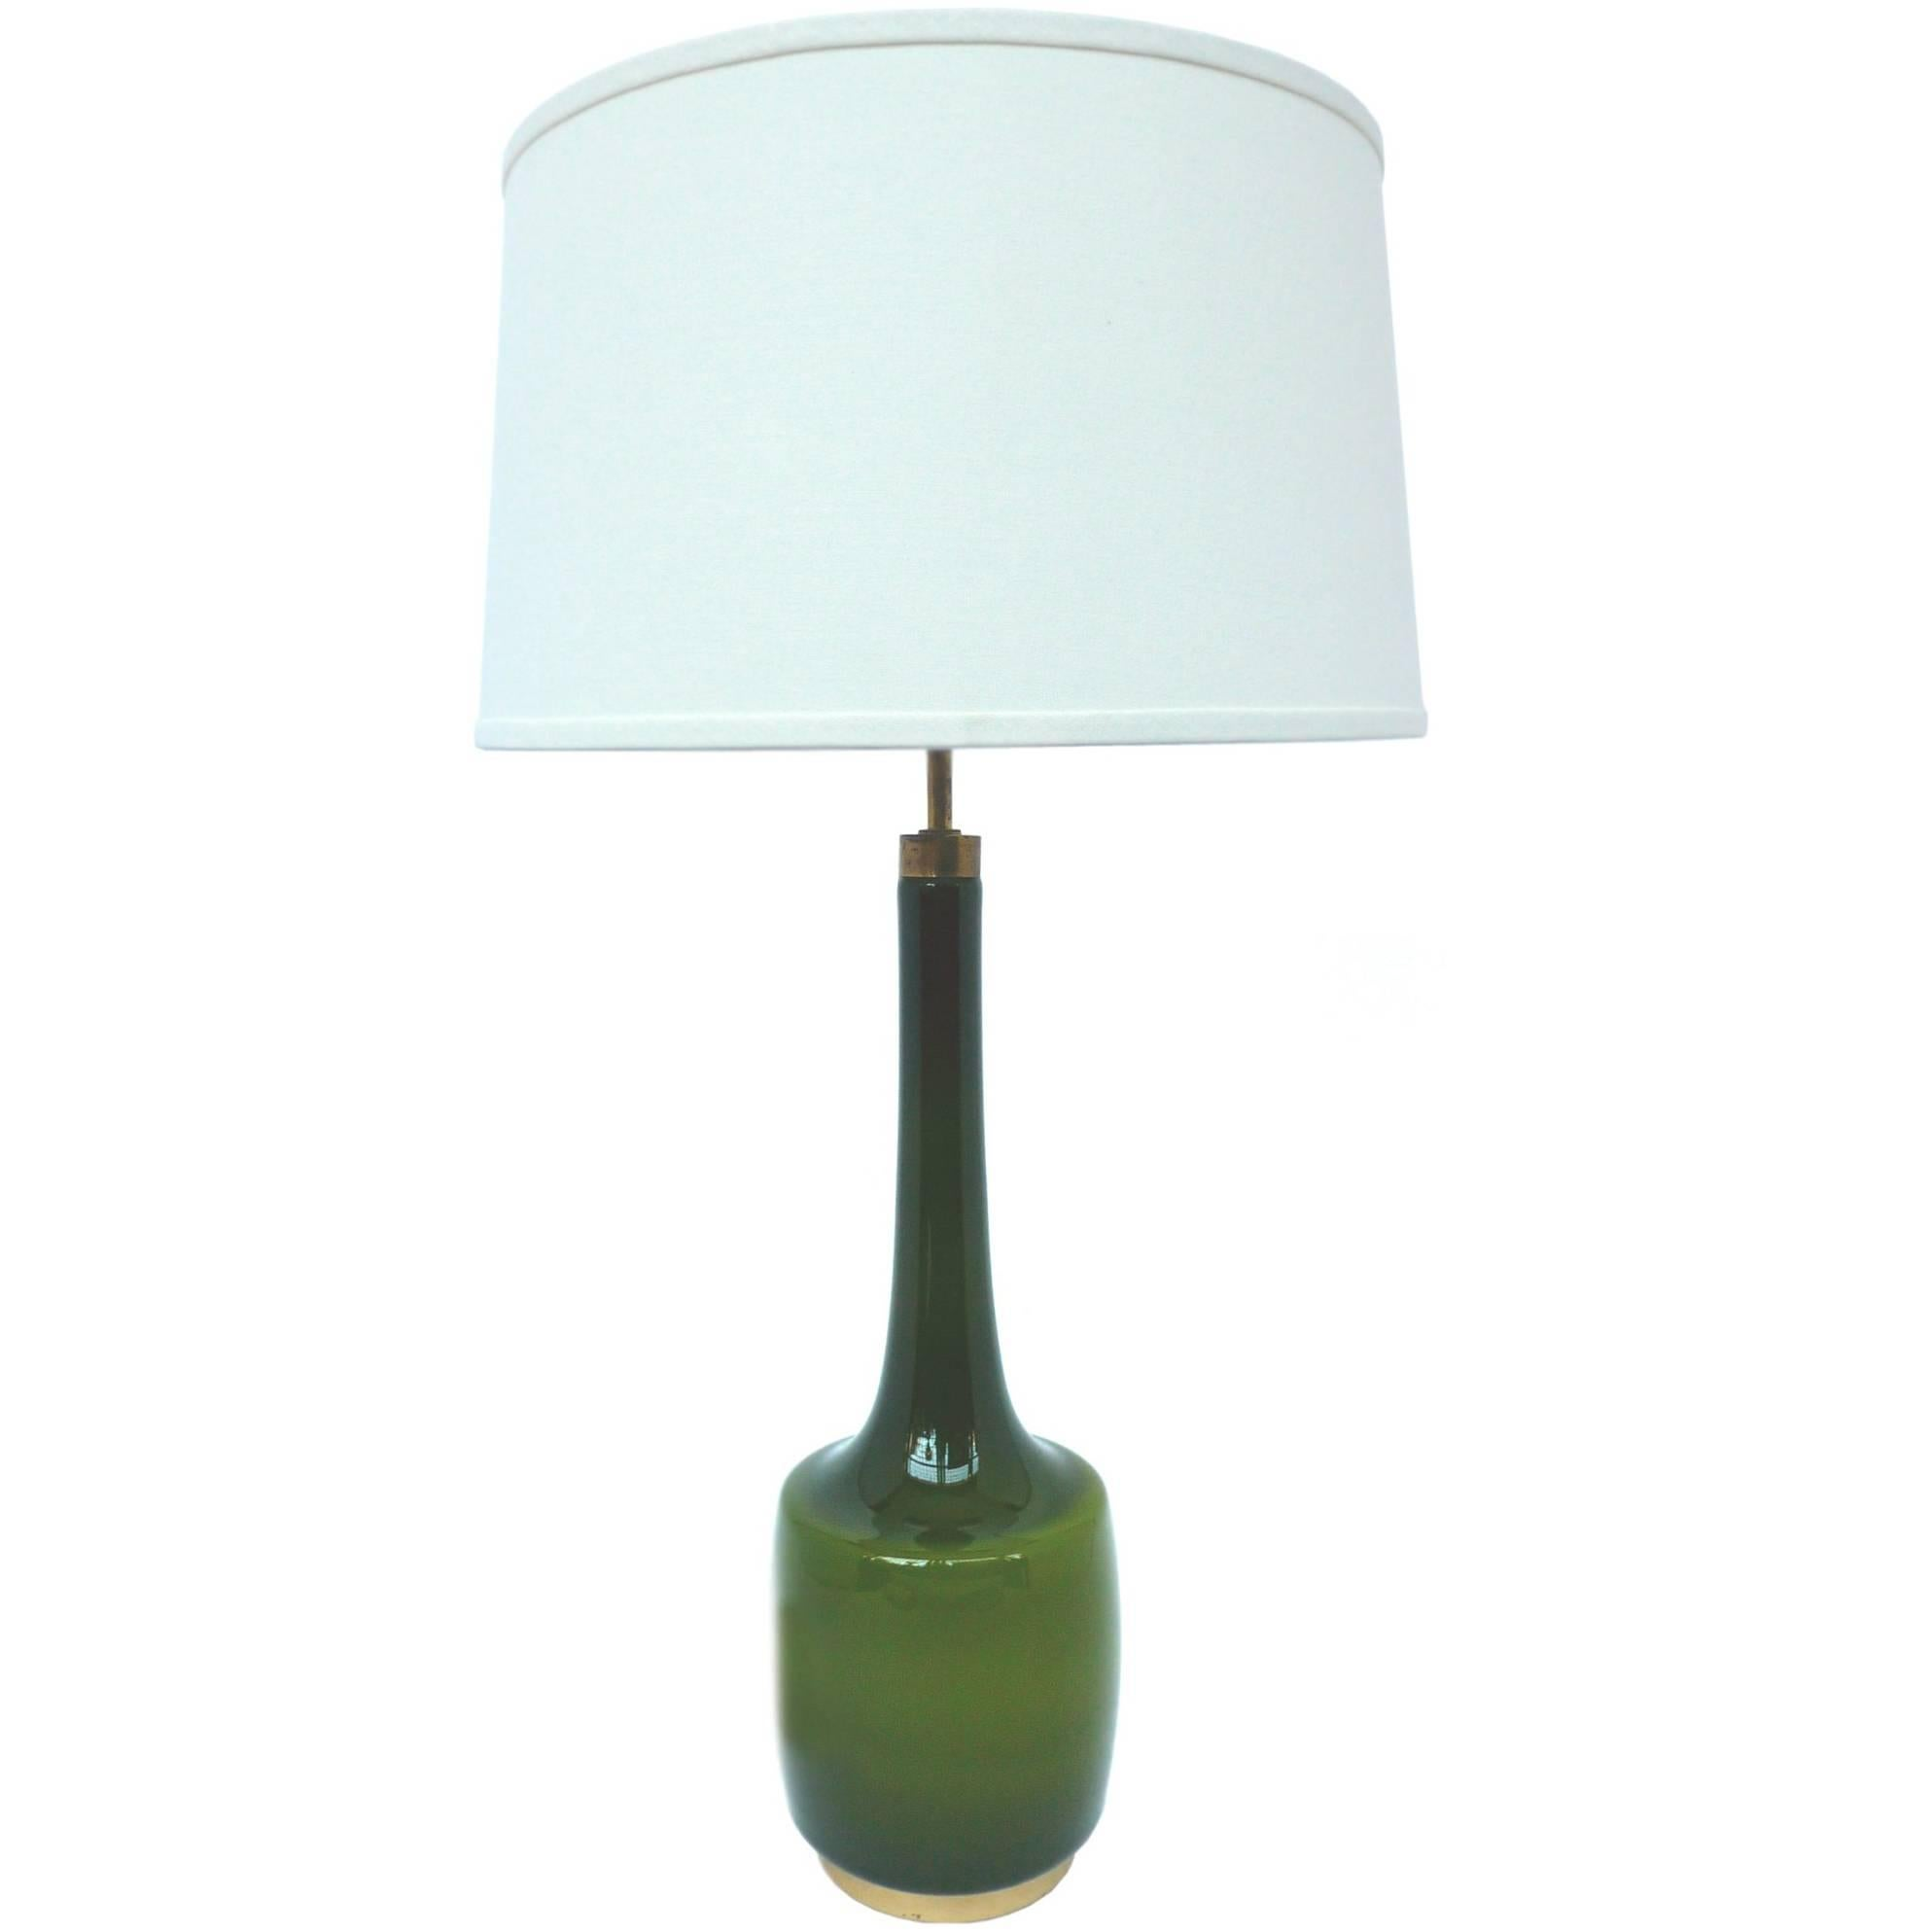 1960s Green Glass Table Lamp By Kastrup Holmegaard At 1stdibs